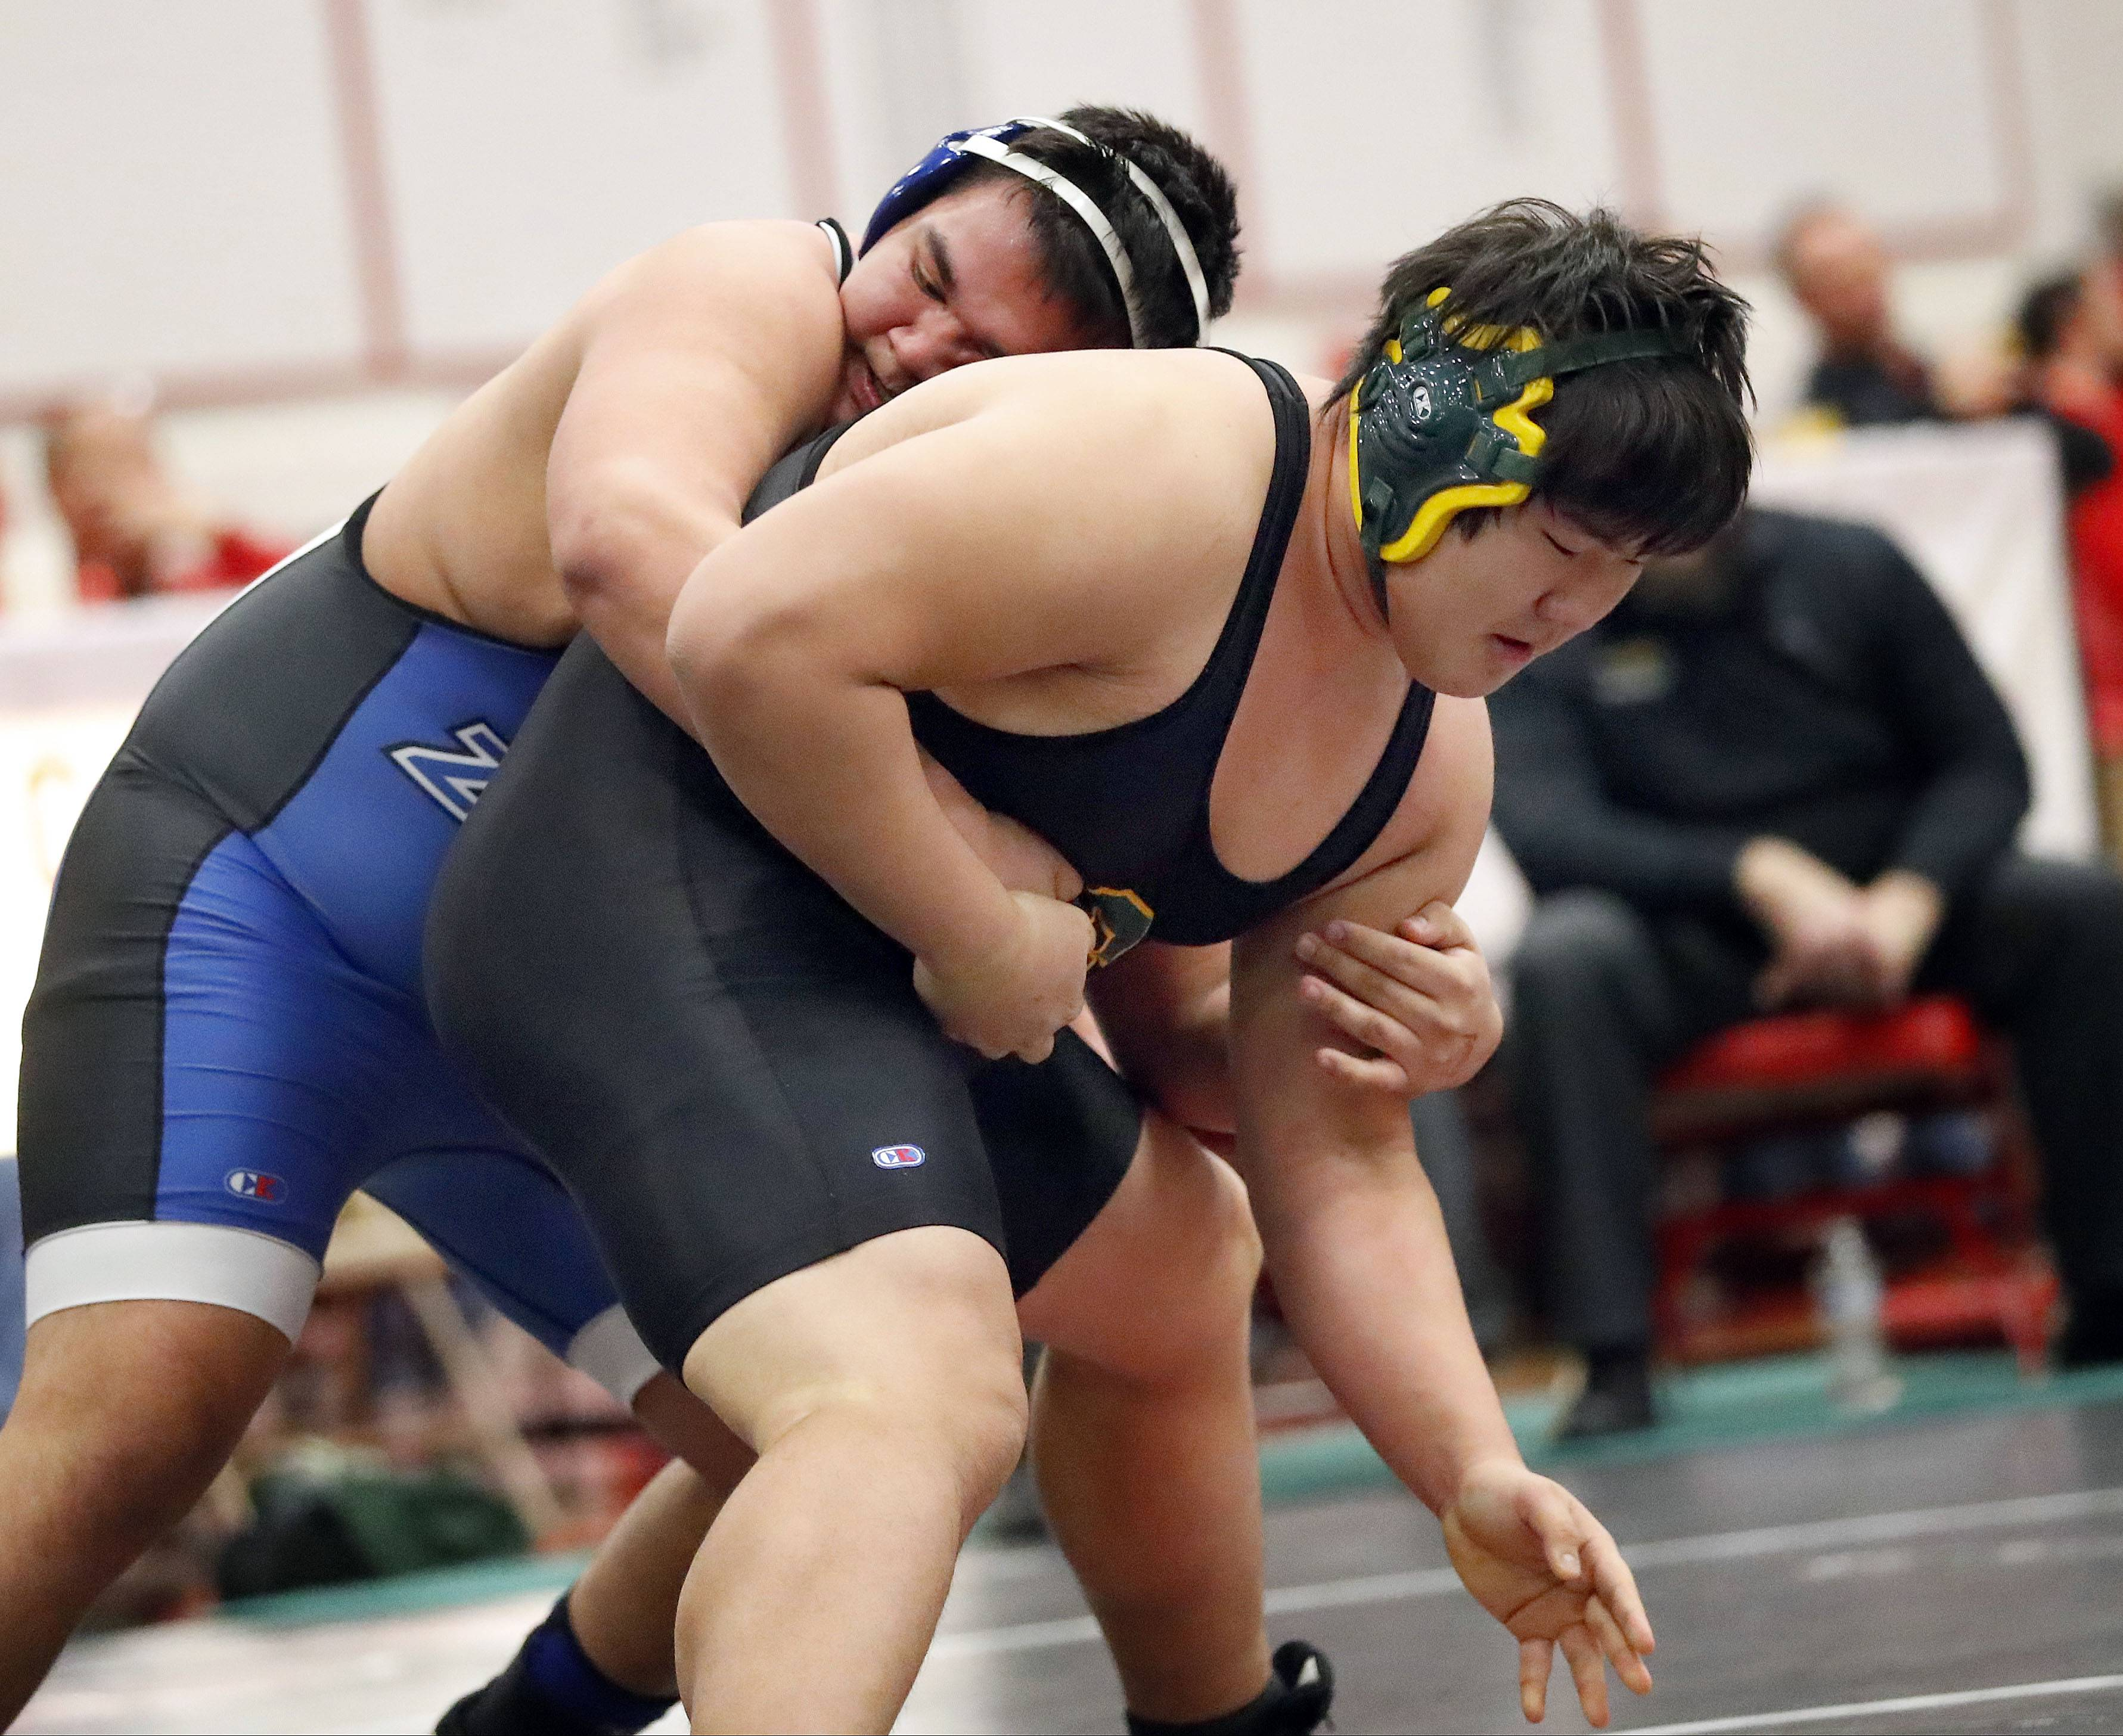 Lake Zurich's Matt Wach, left, takes on Stevenson's Anand Batbaatar at 285 pounds during Class 3A sectional wrestling action Friday night at Barrington High School.